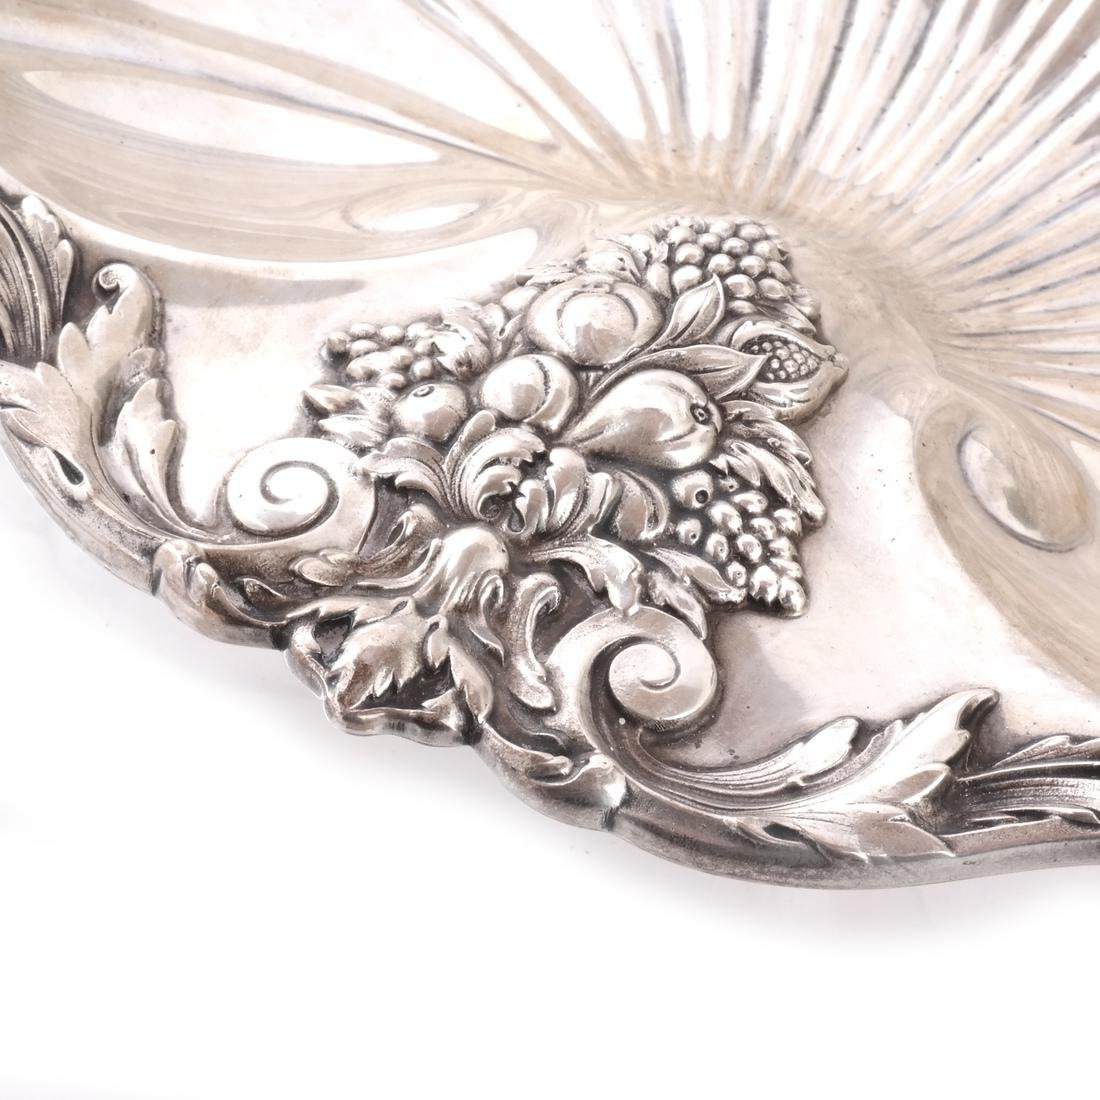 Reed & Barton Sterling Silver Tray - 2